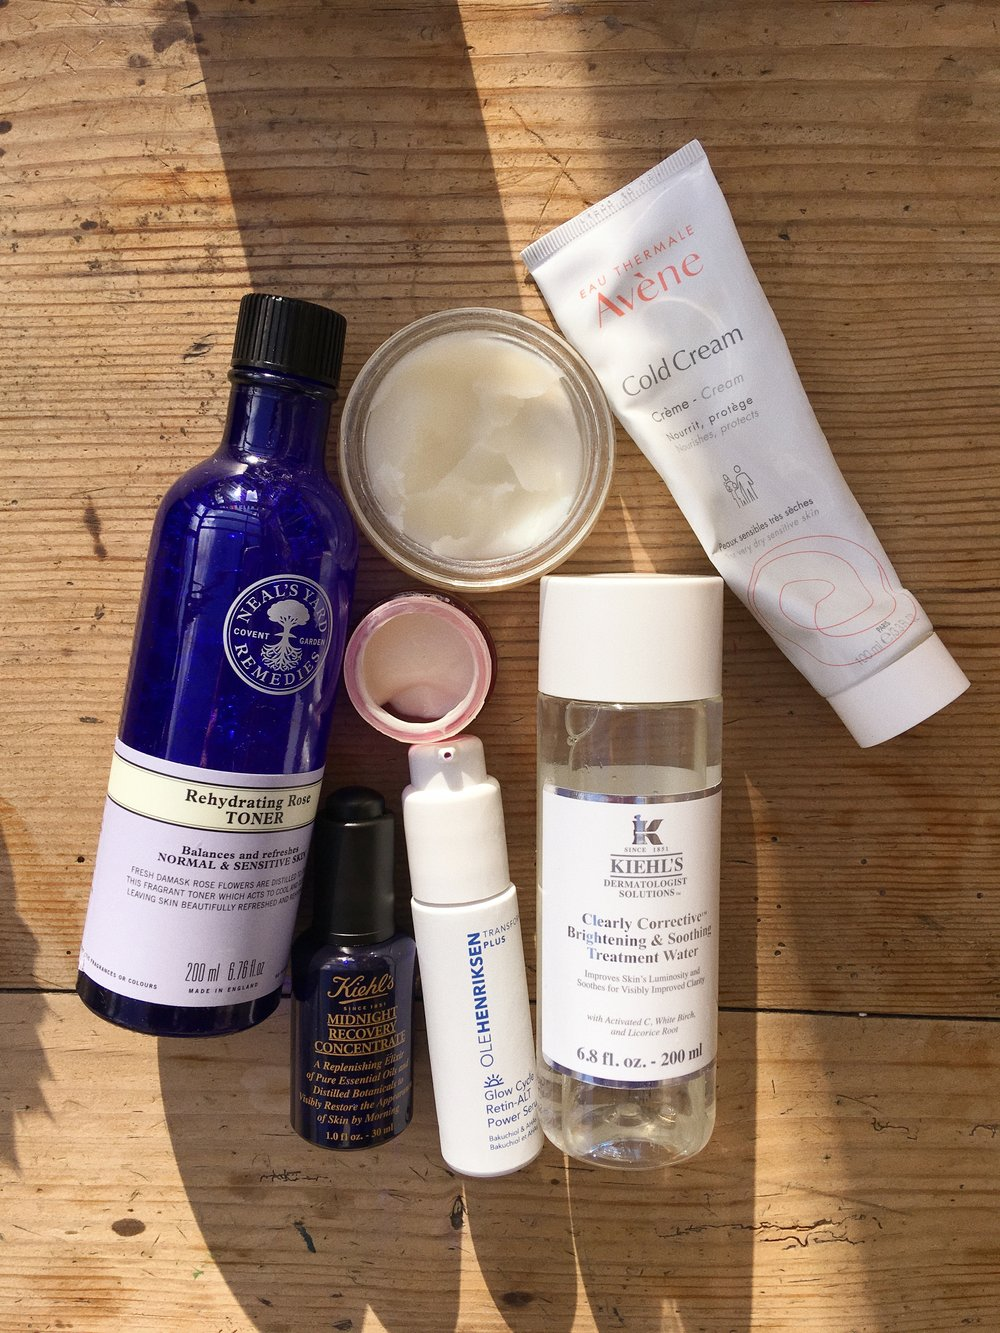 The Skincare Products That Transformed My Skin